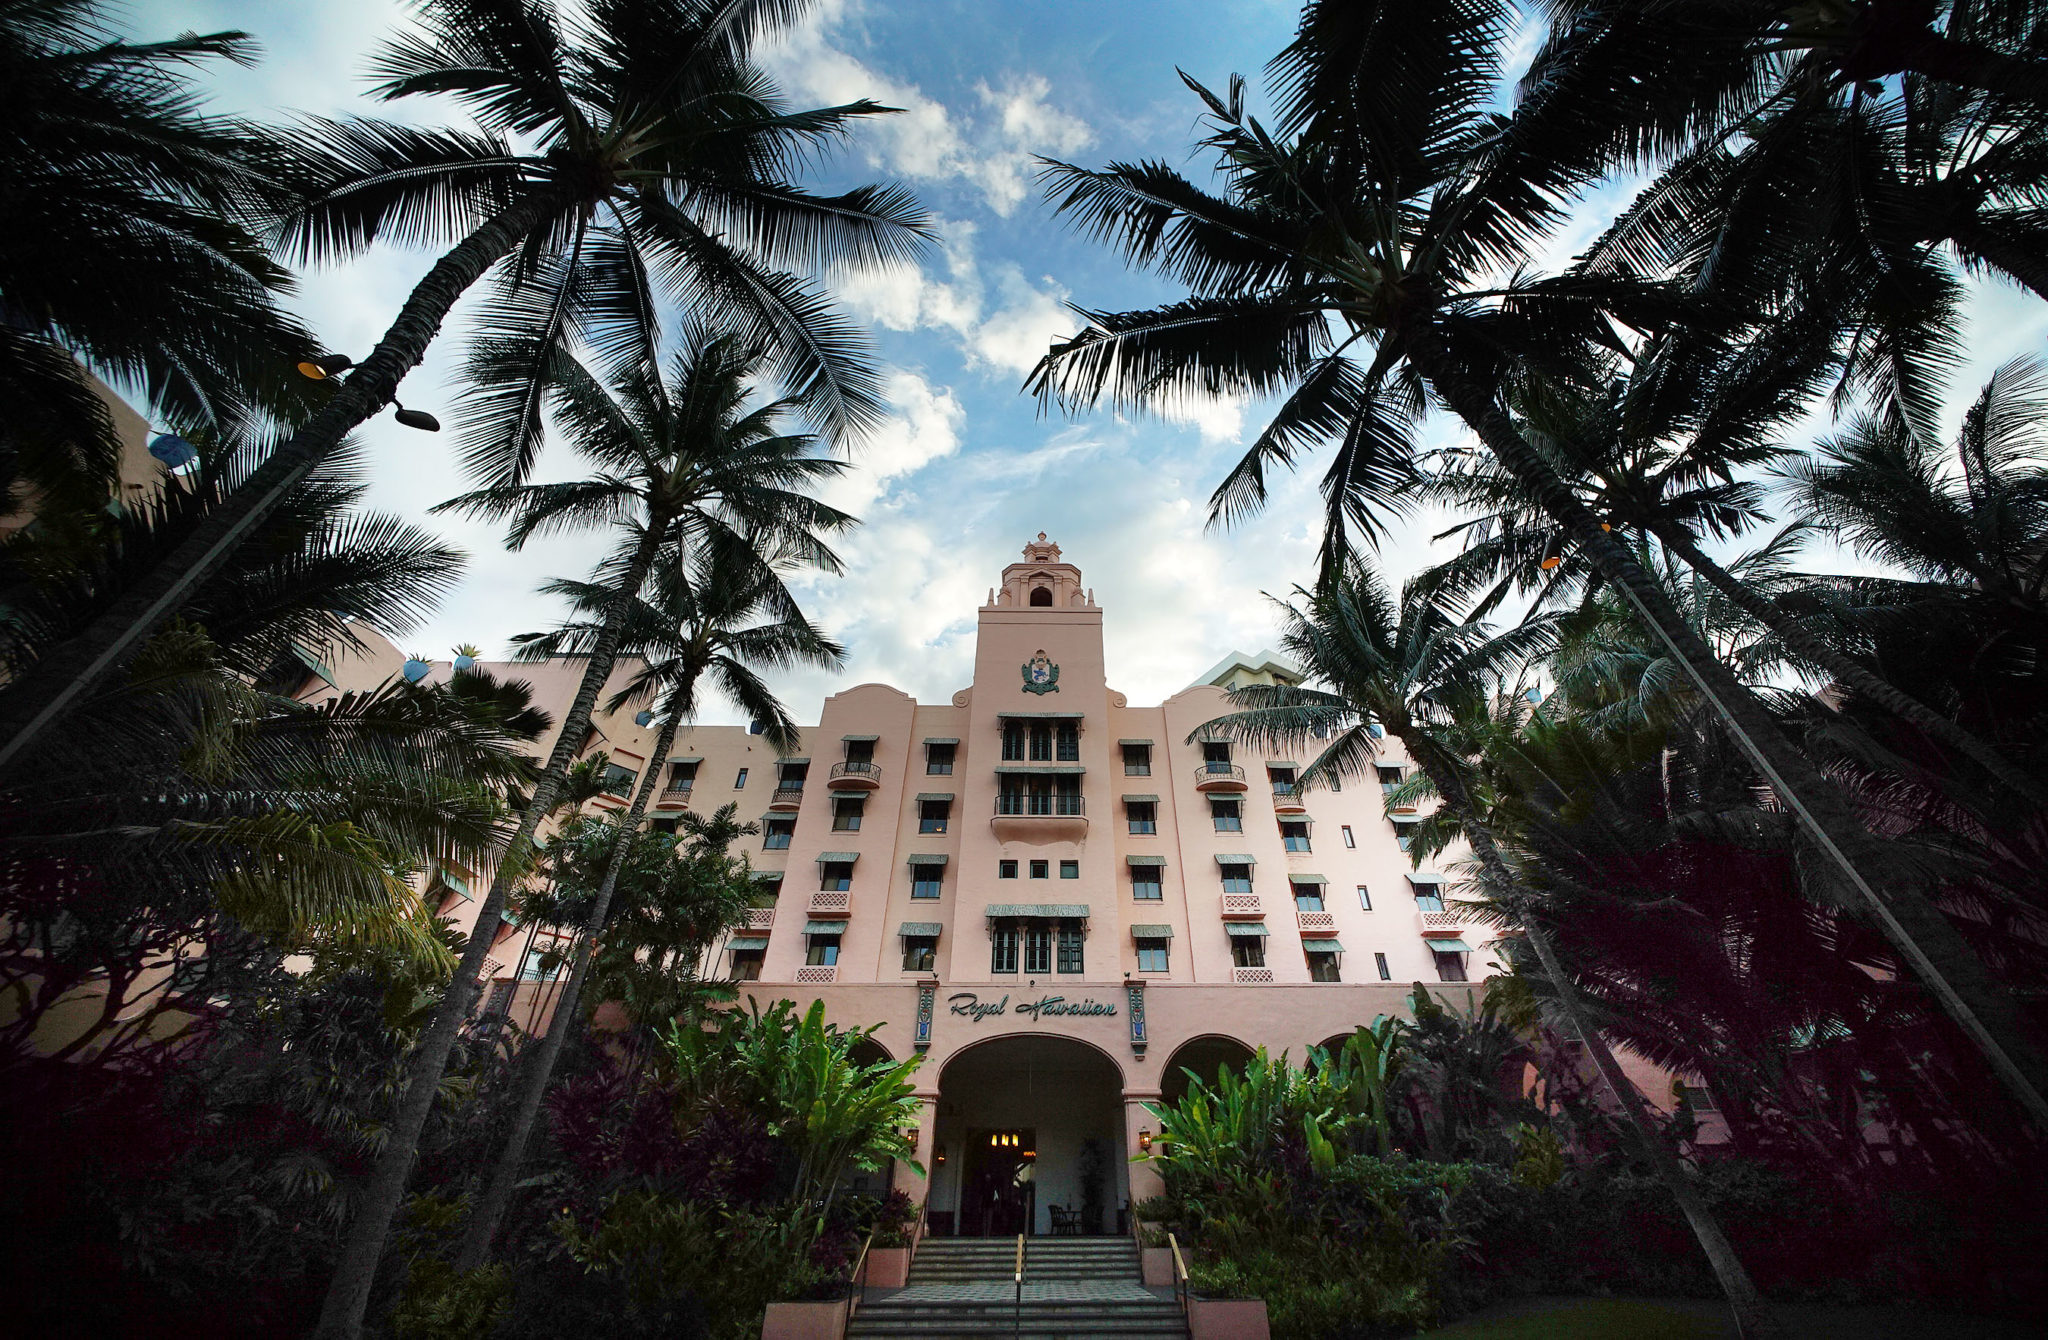 Hawaii S Hotels Can Help Lead The Fight Against This Pandemic Honolulu Civil Beat